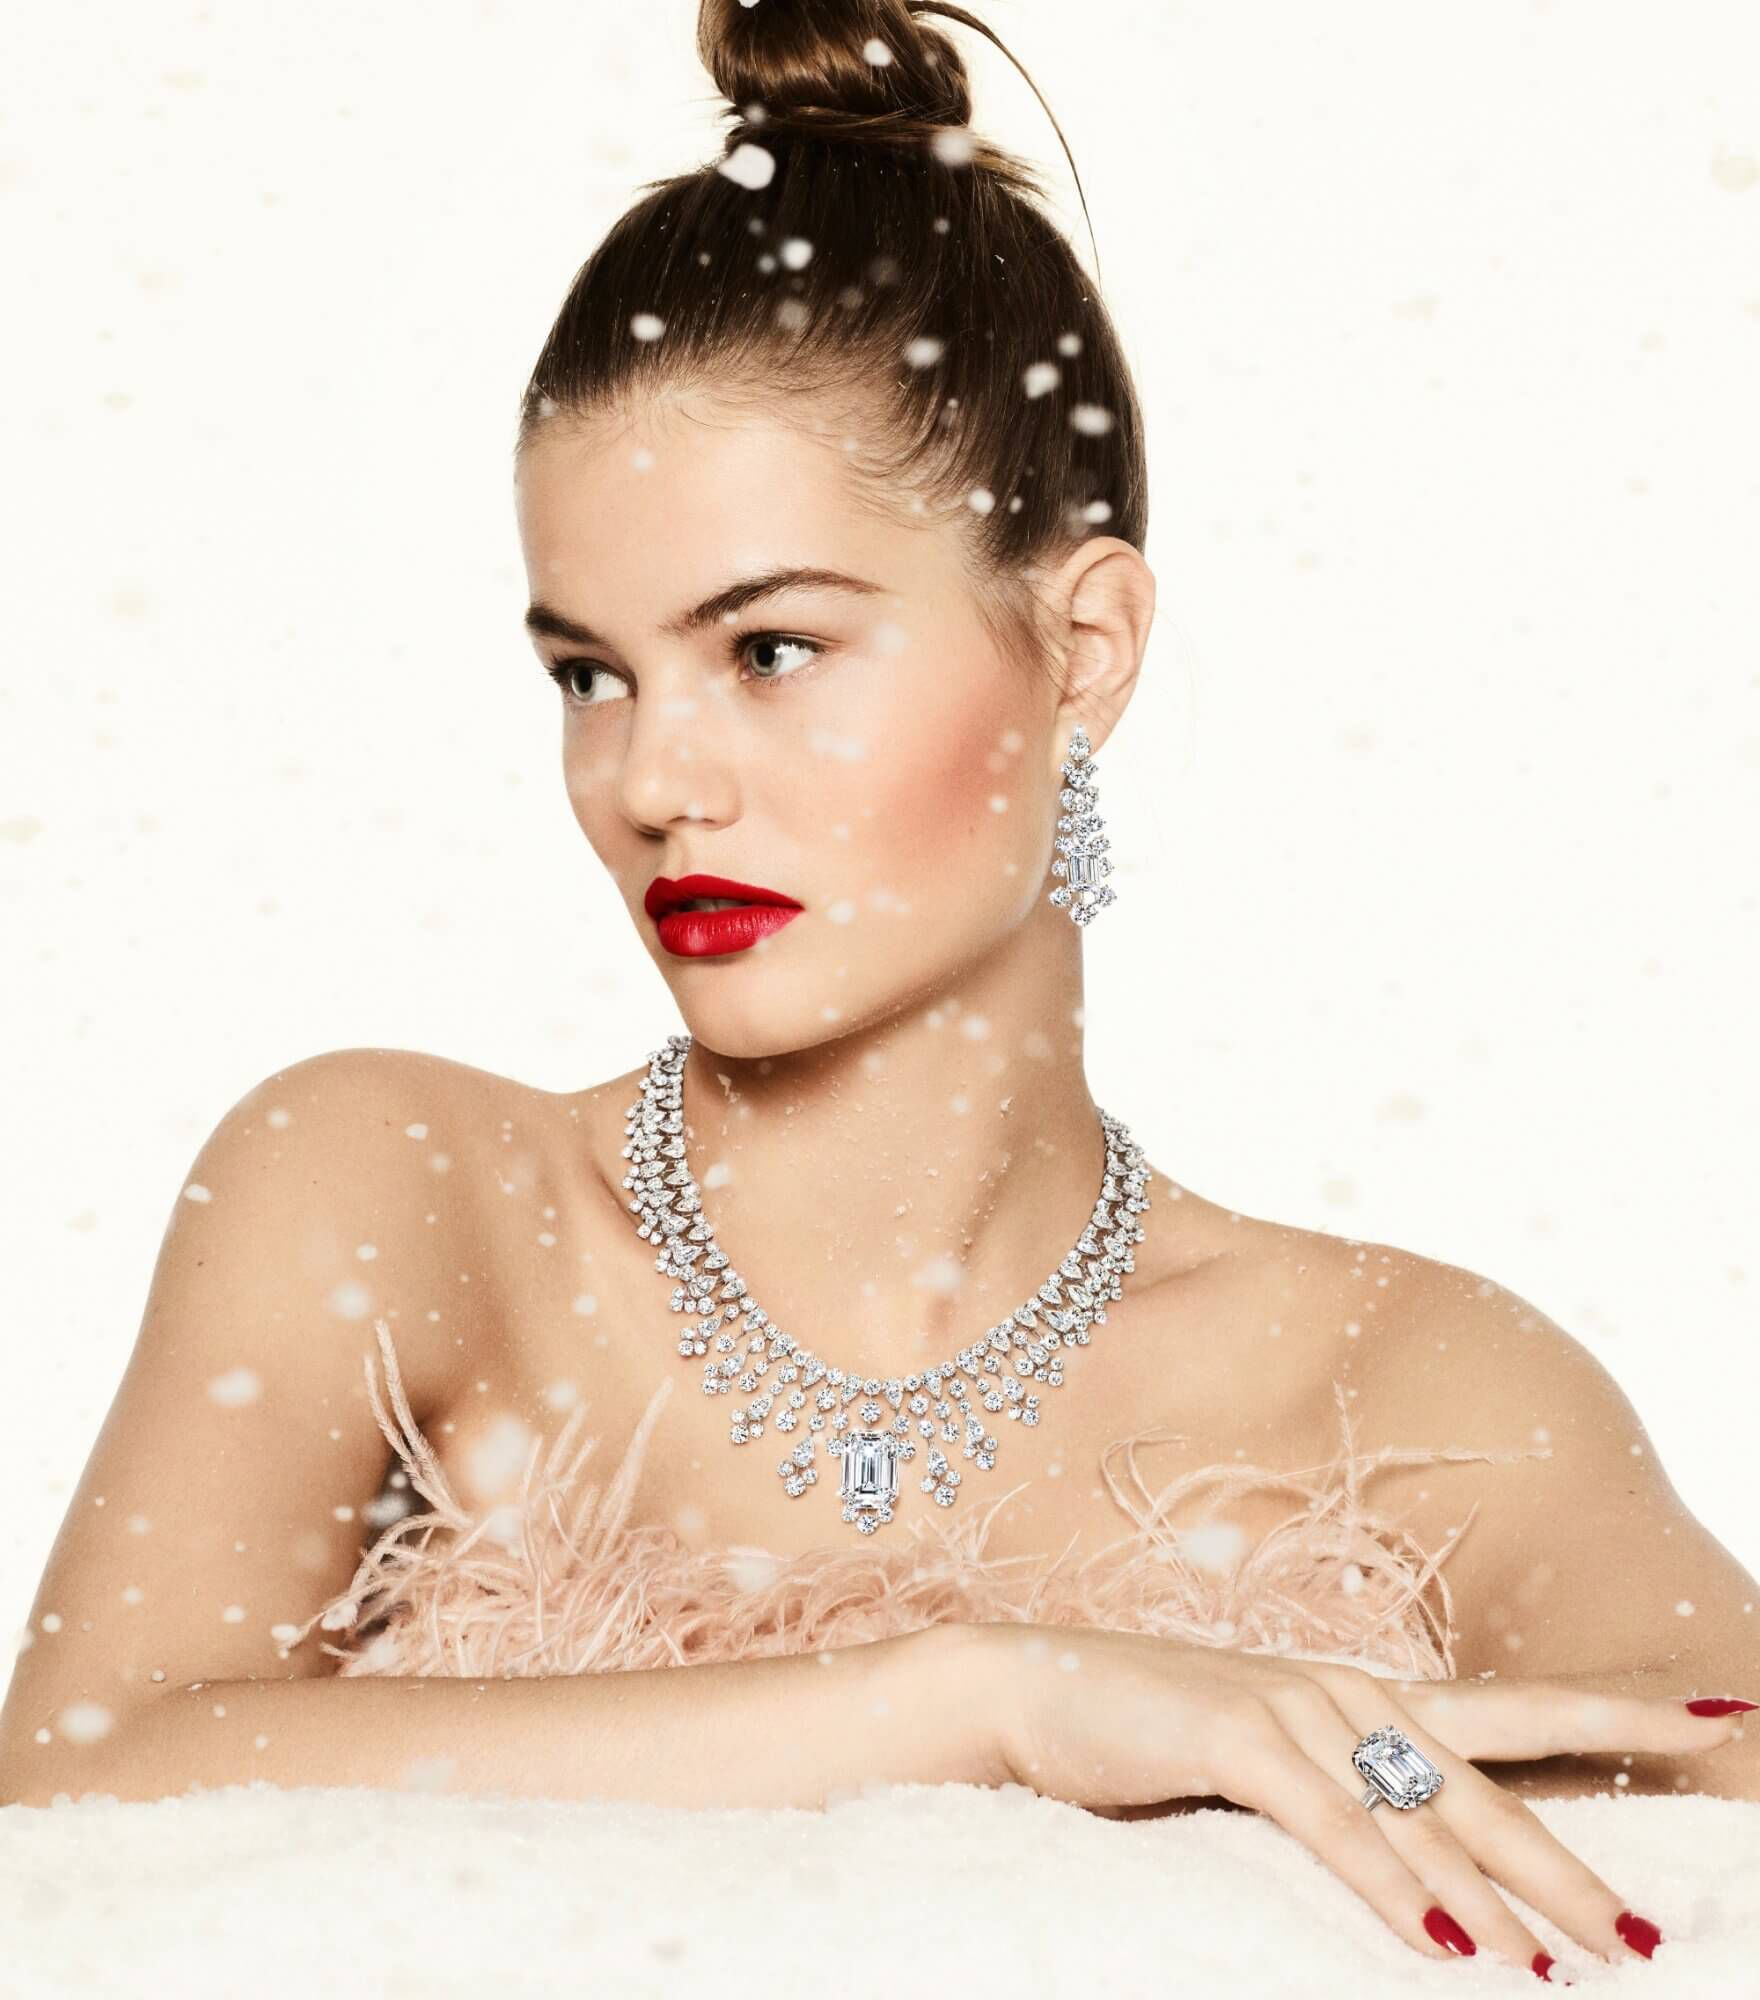 a lady wearing Graff white diamond high jewellery necklace, earrings and ring in a winter wonderland scene